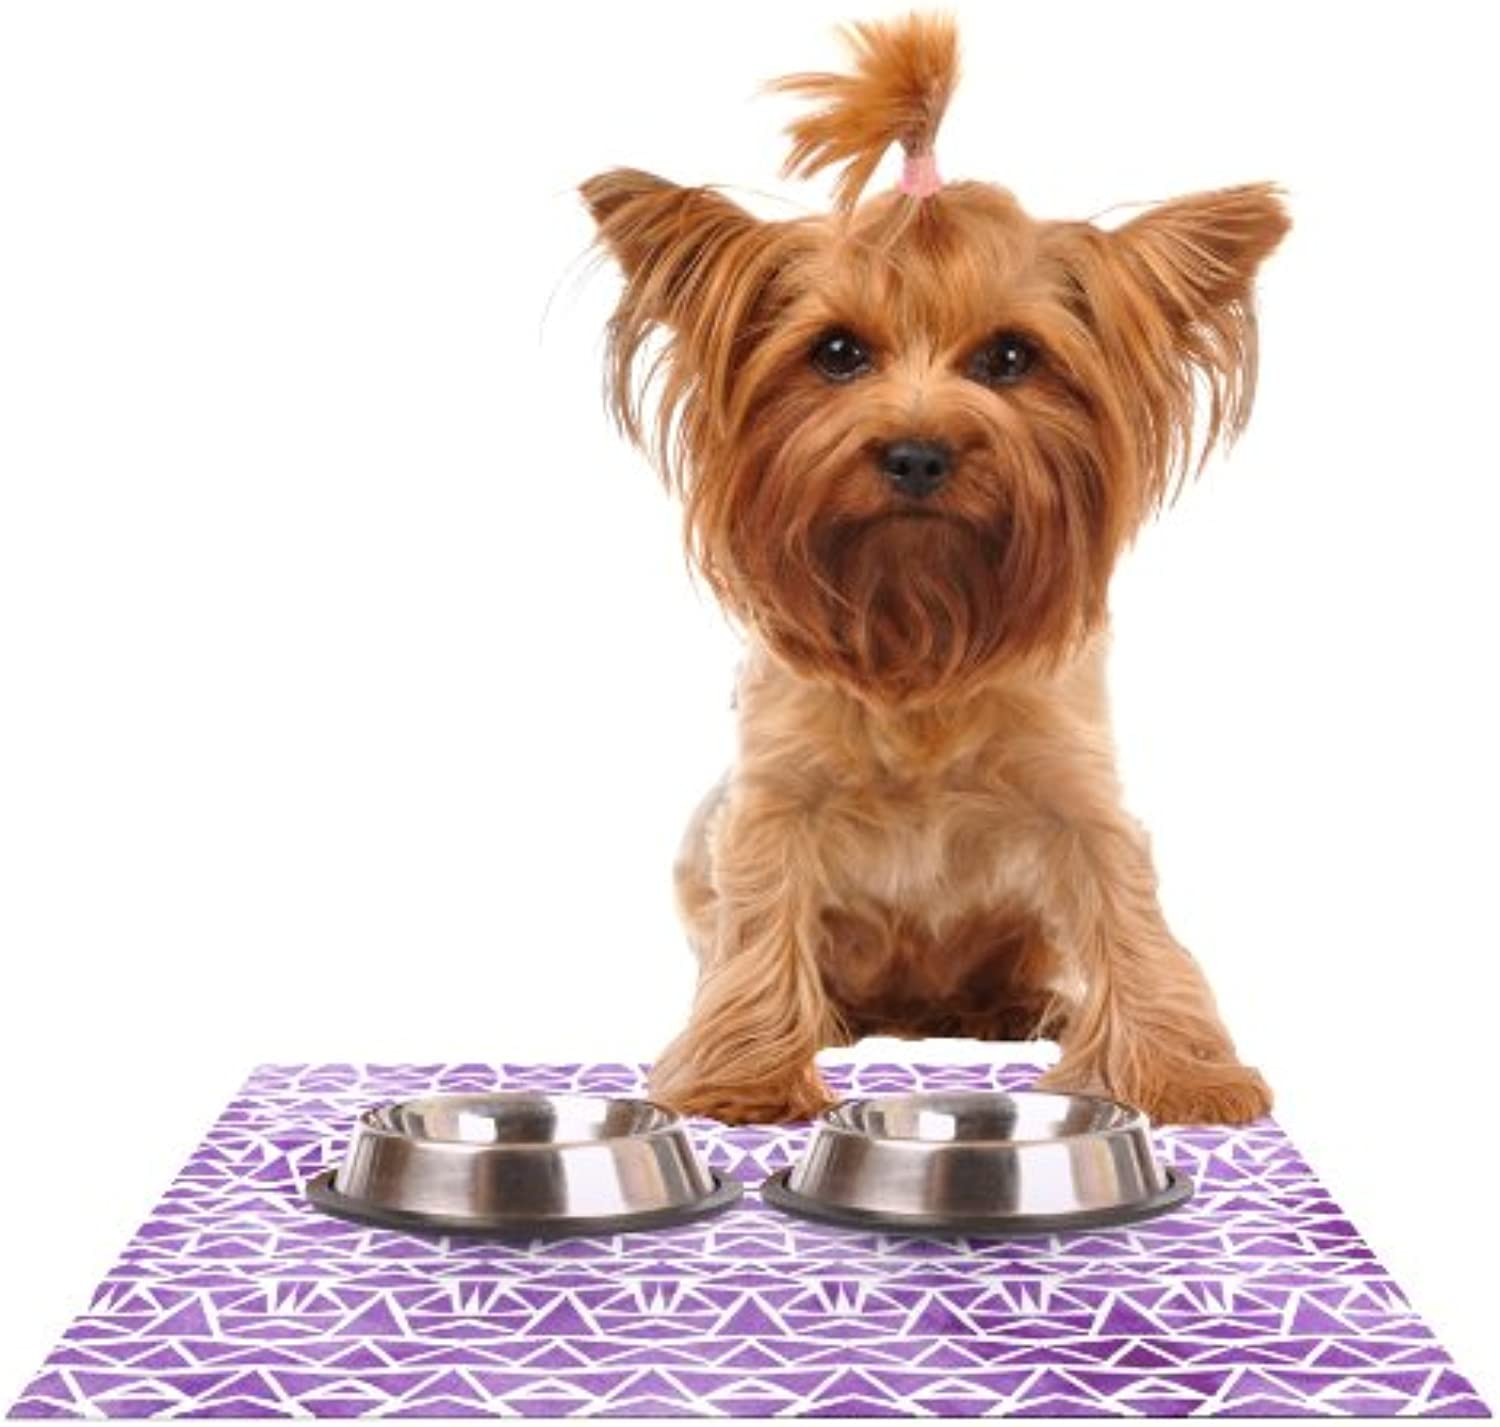 Kess InHouse Pom Graphic Design Tribal Mosaic  Feeding Mat for Pet Bowl, 24 by 15Inch